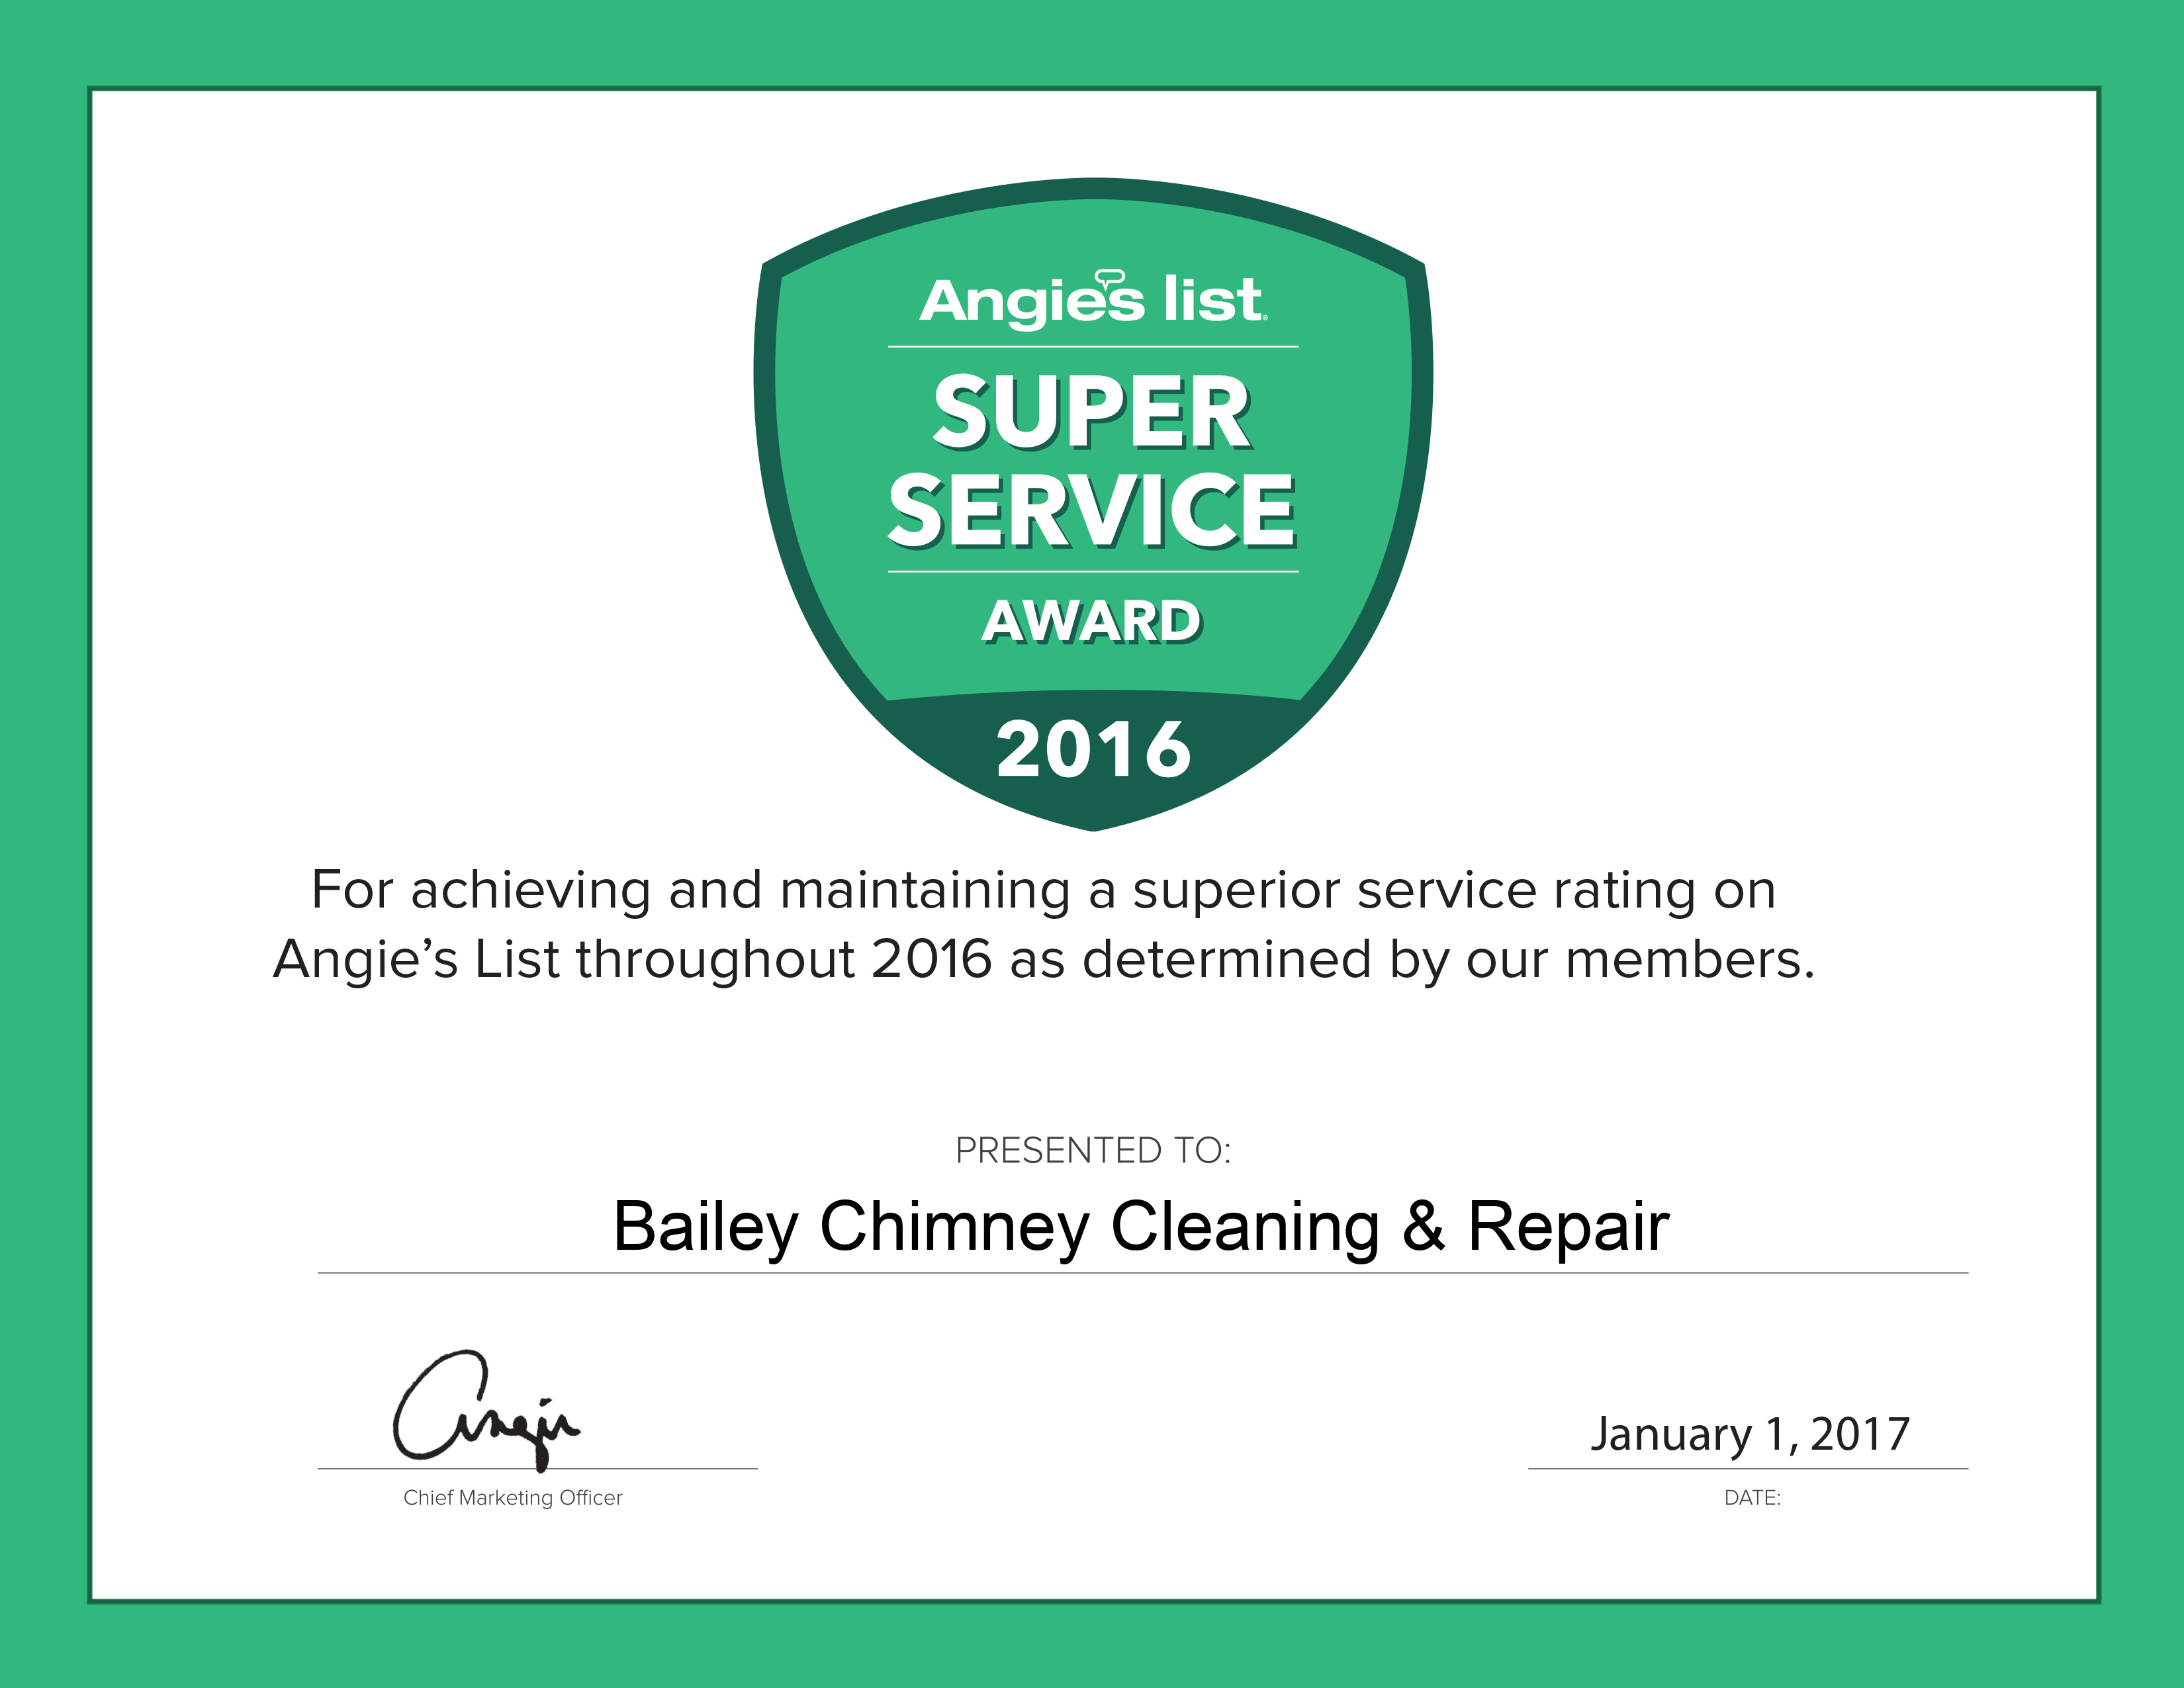 Angies List super service award chimney cleaning & Repair